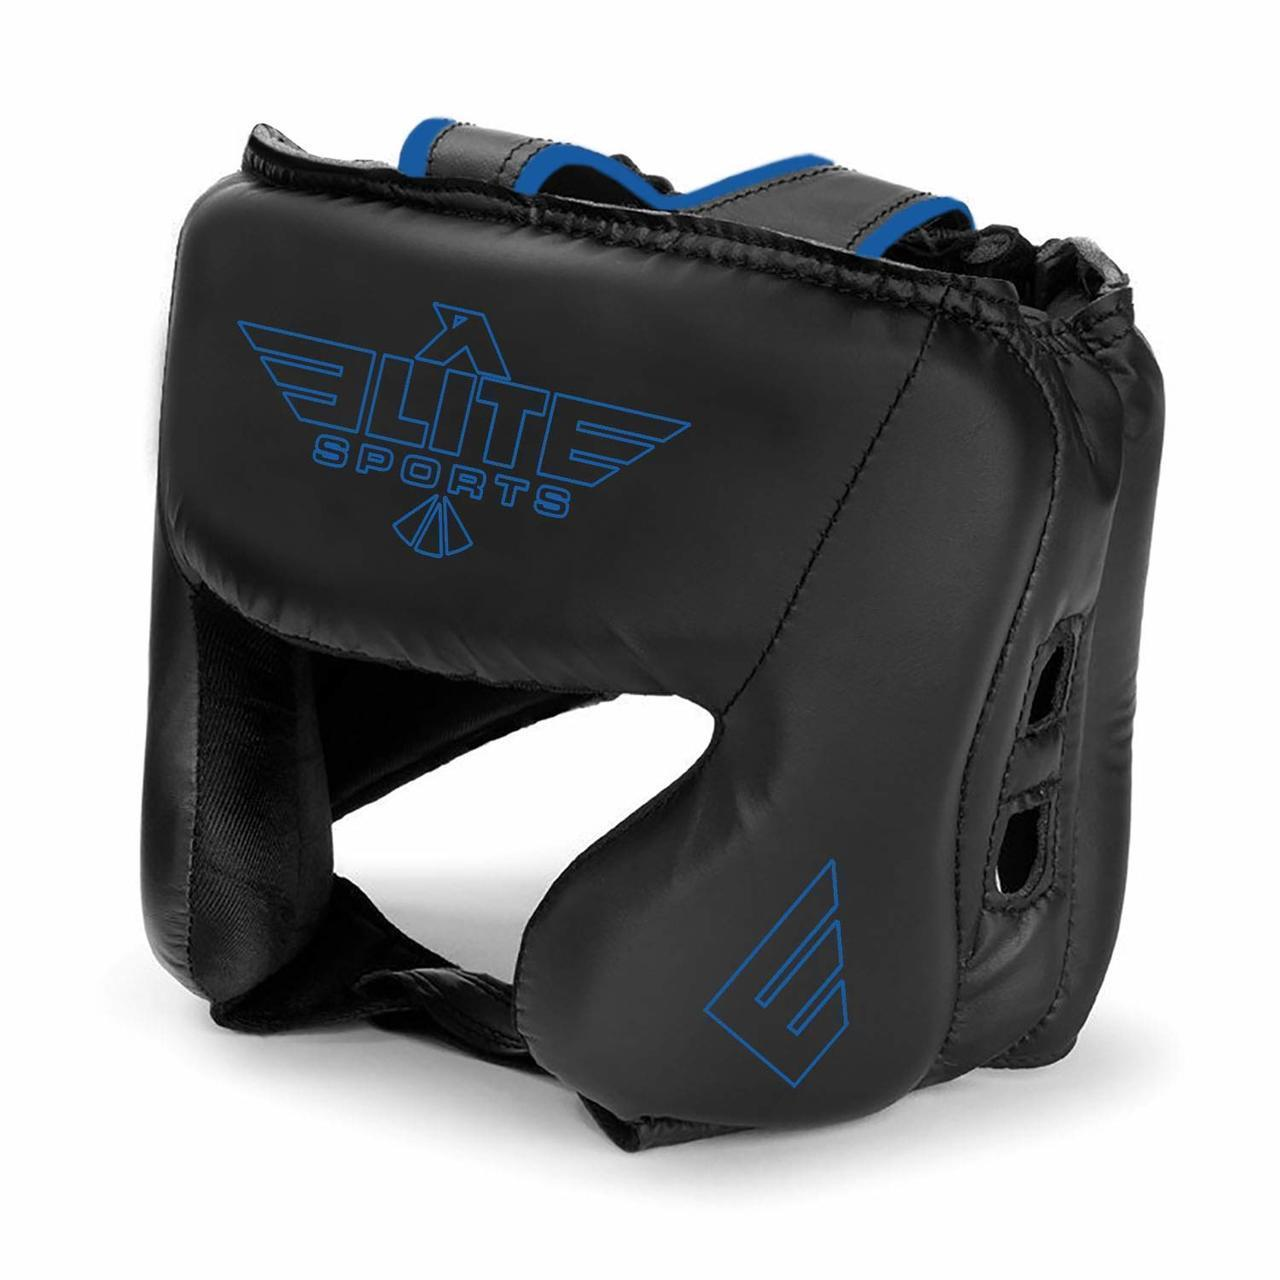 Elite Sports Standard Series Sparring Black/Blue Boxing Headgear